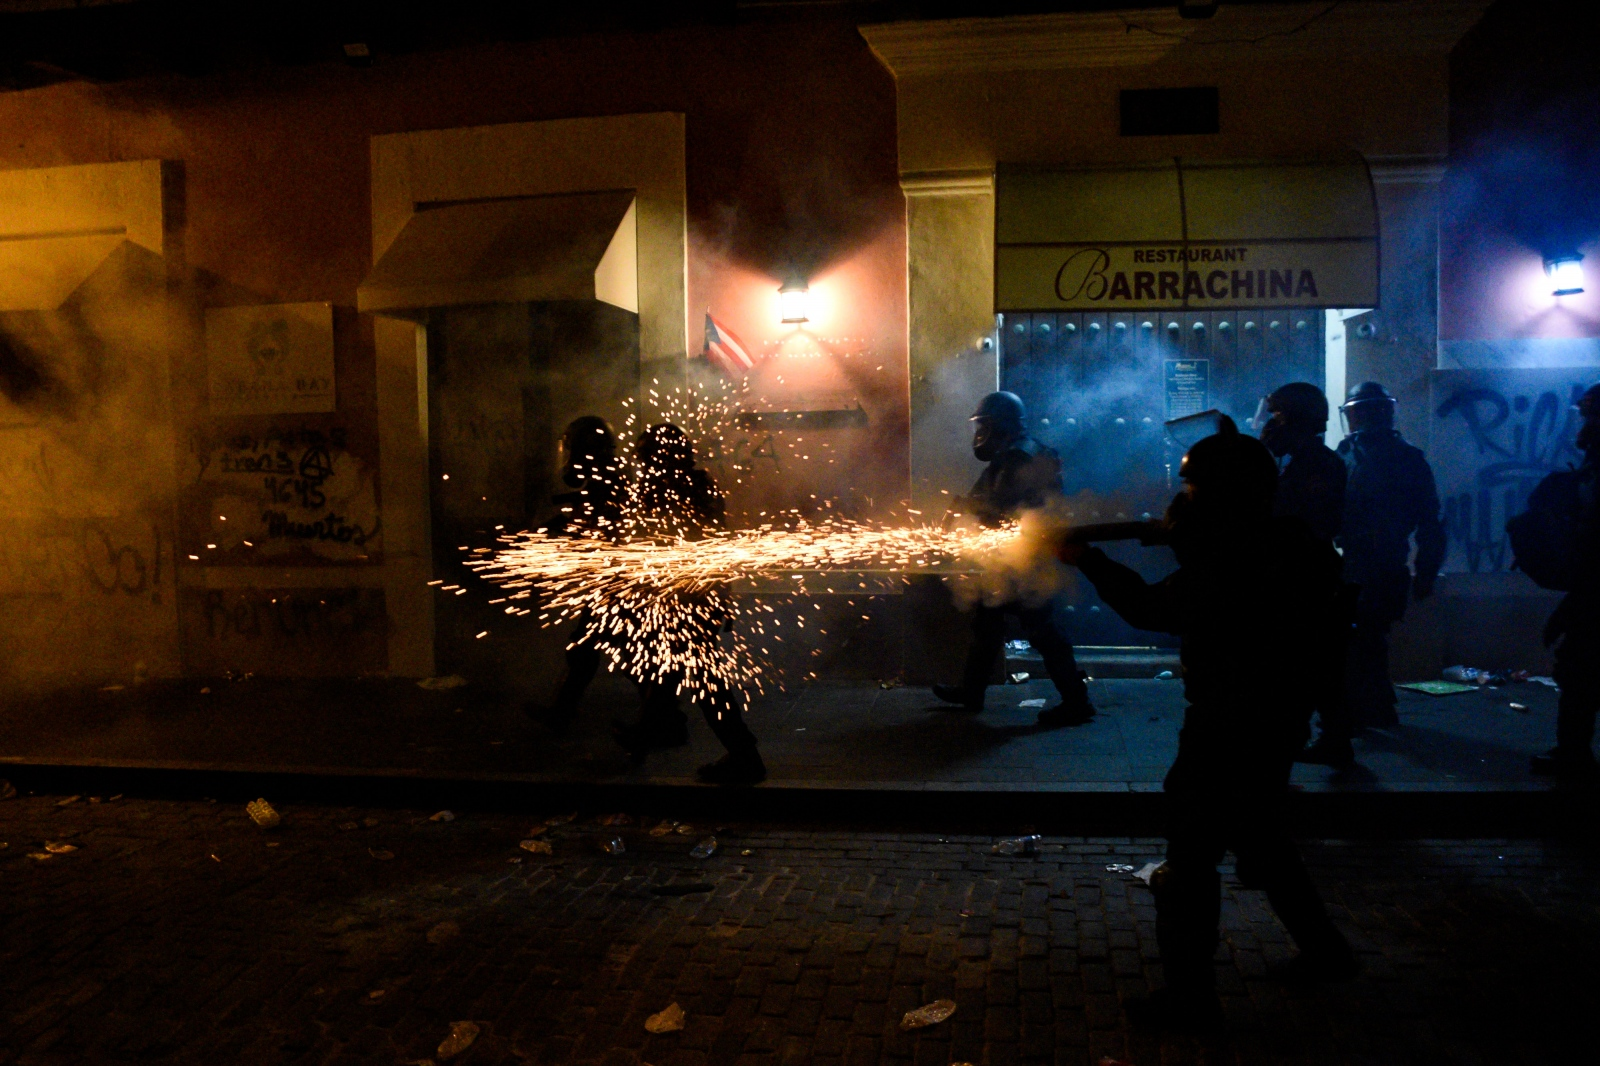 Police fire tear gas at demonstrators during the protests calling for the resignation of Governor of Puerto Rico, Ricardo Rosselló. Shot while on assignment for Reuters on July 17, 2019.